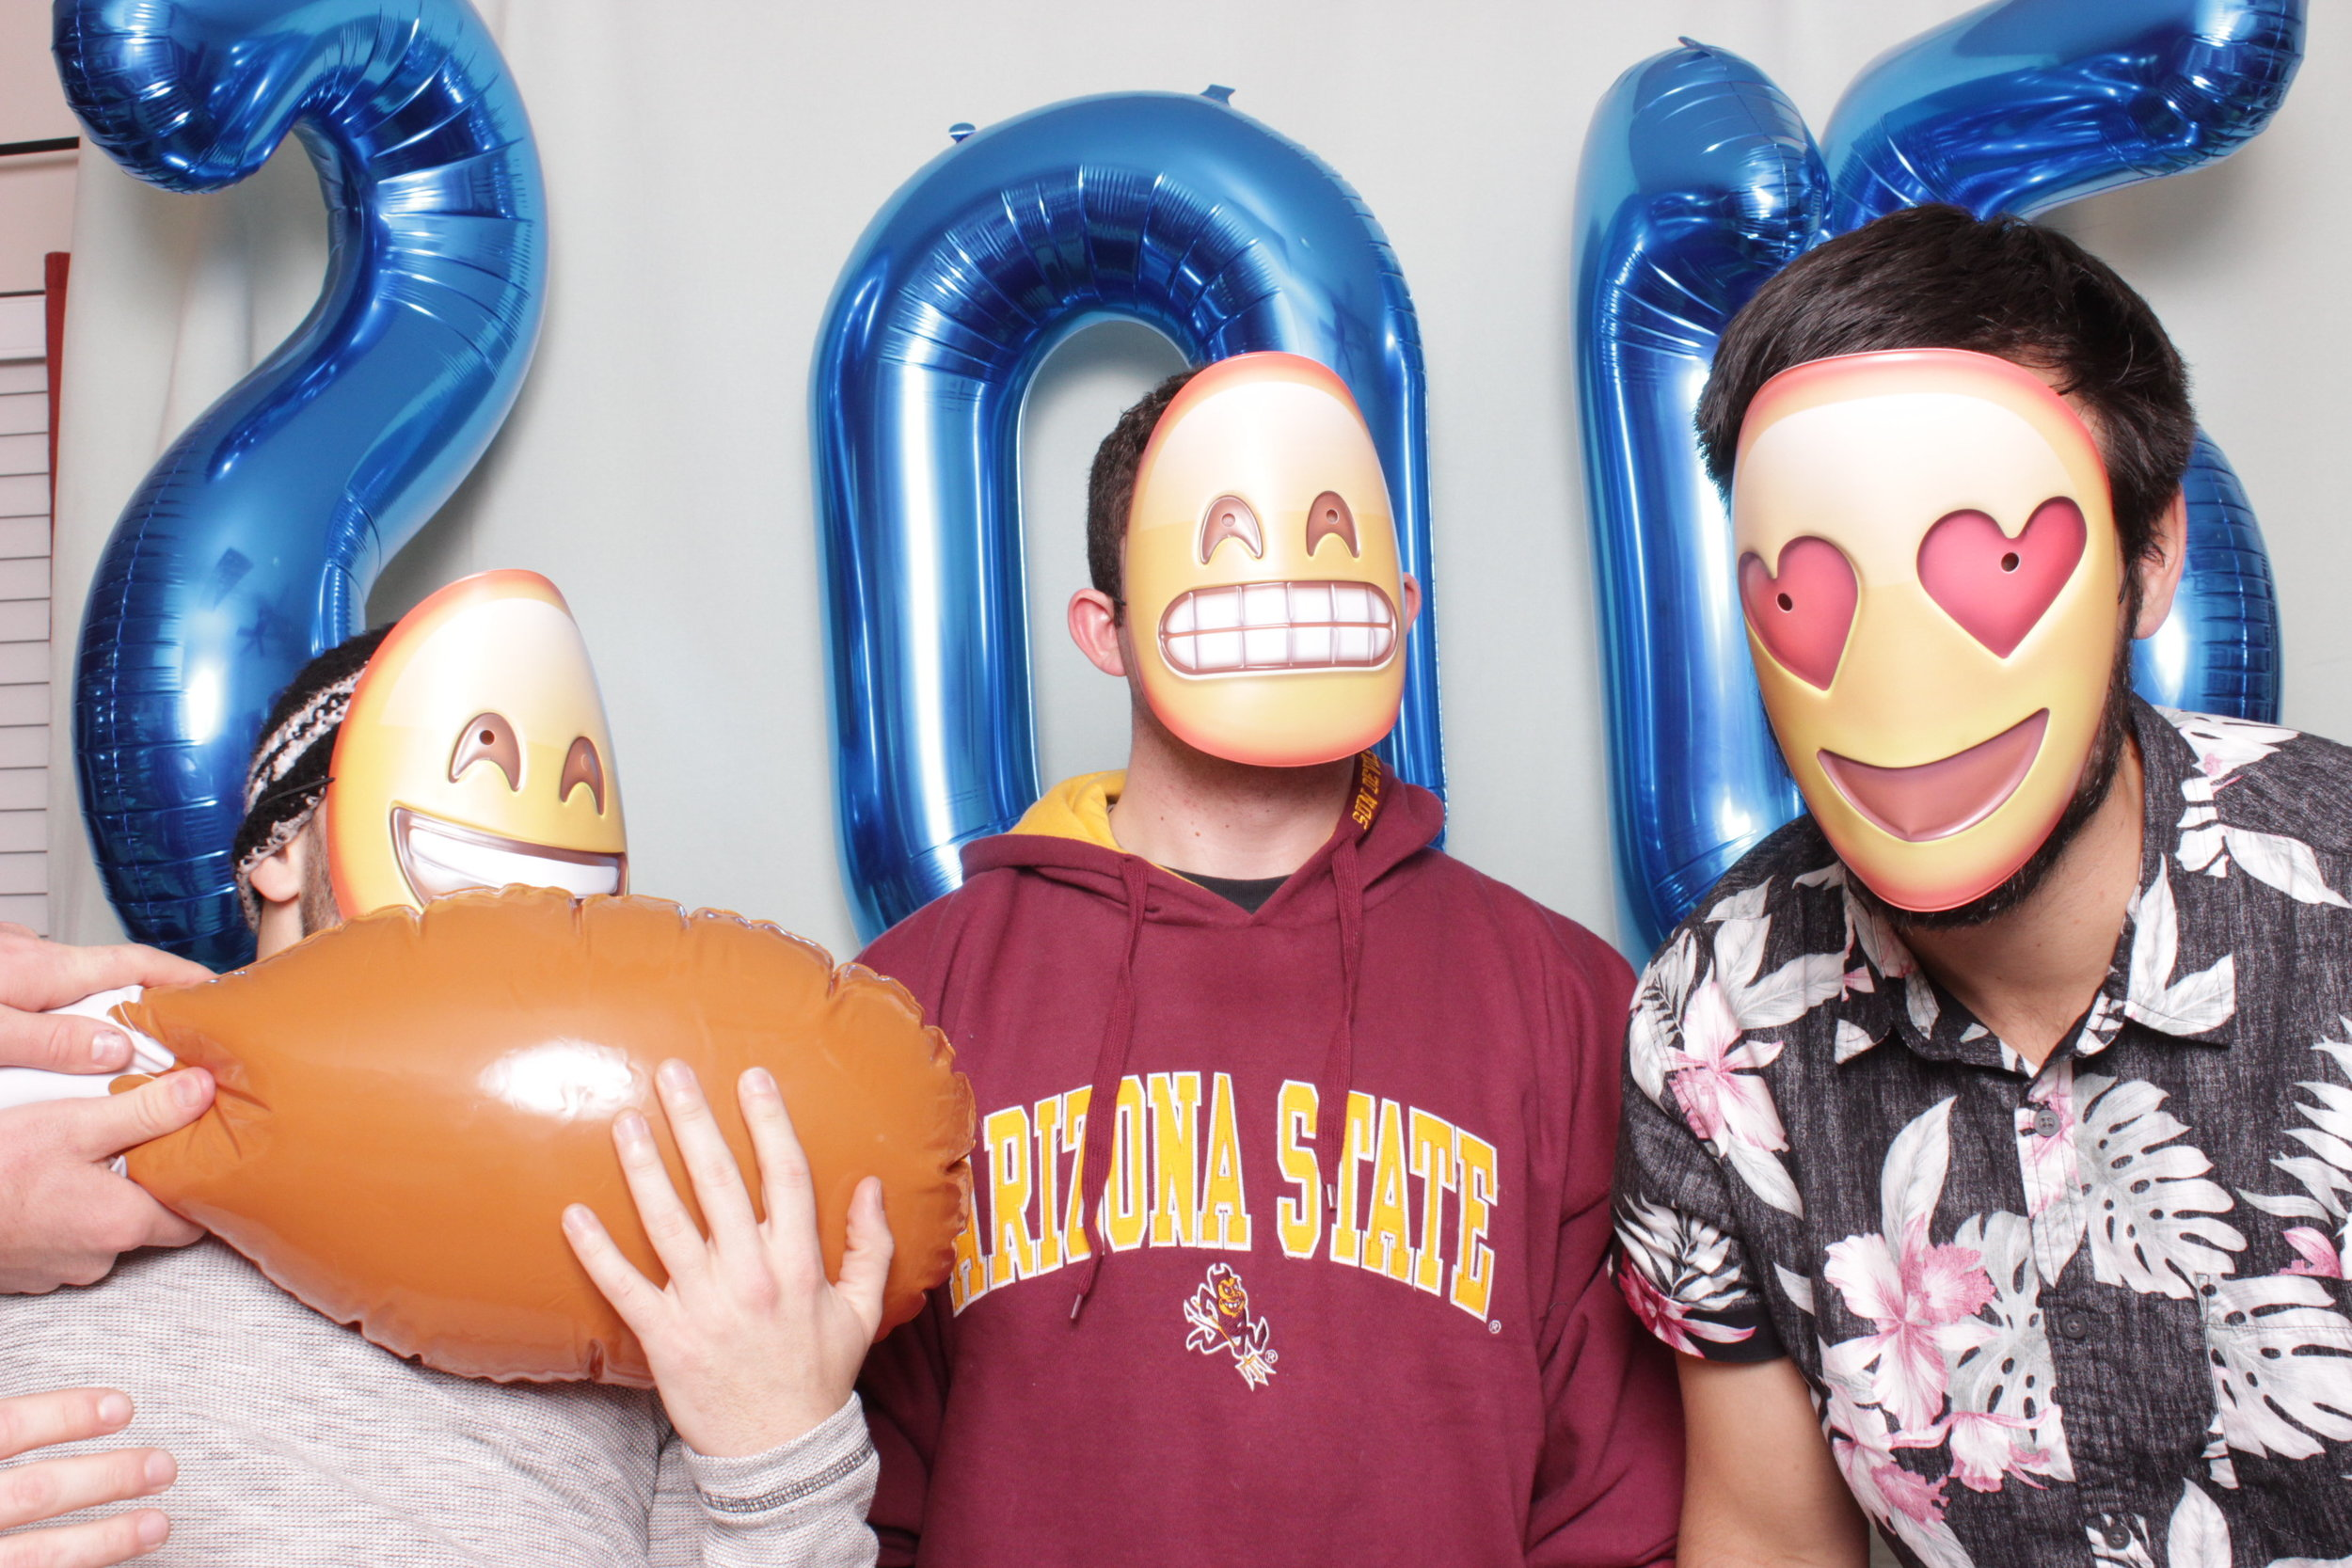 People always love the emoticon masks!